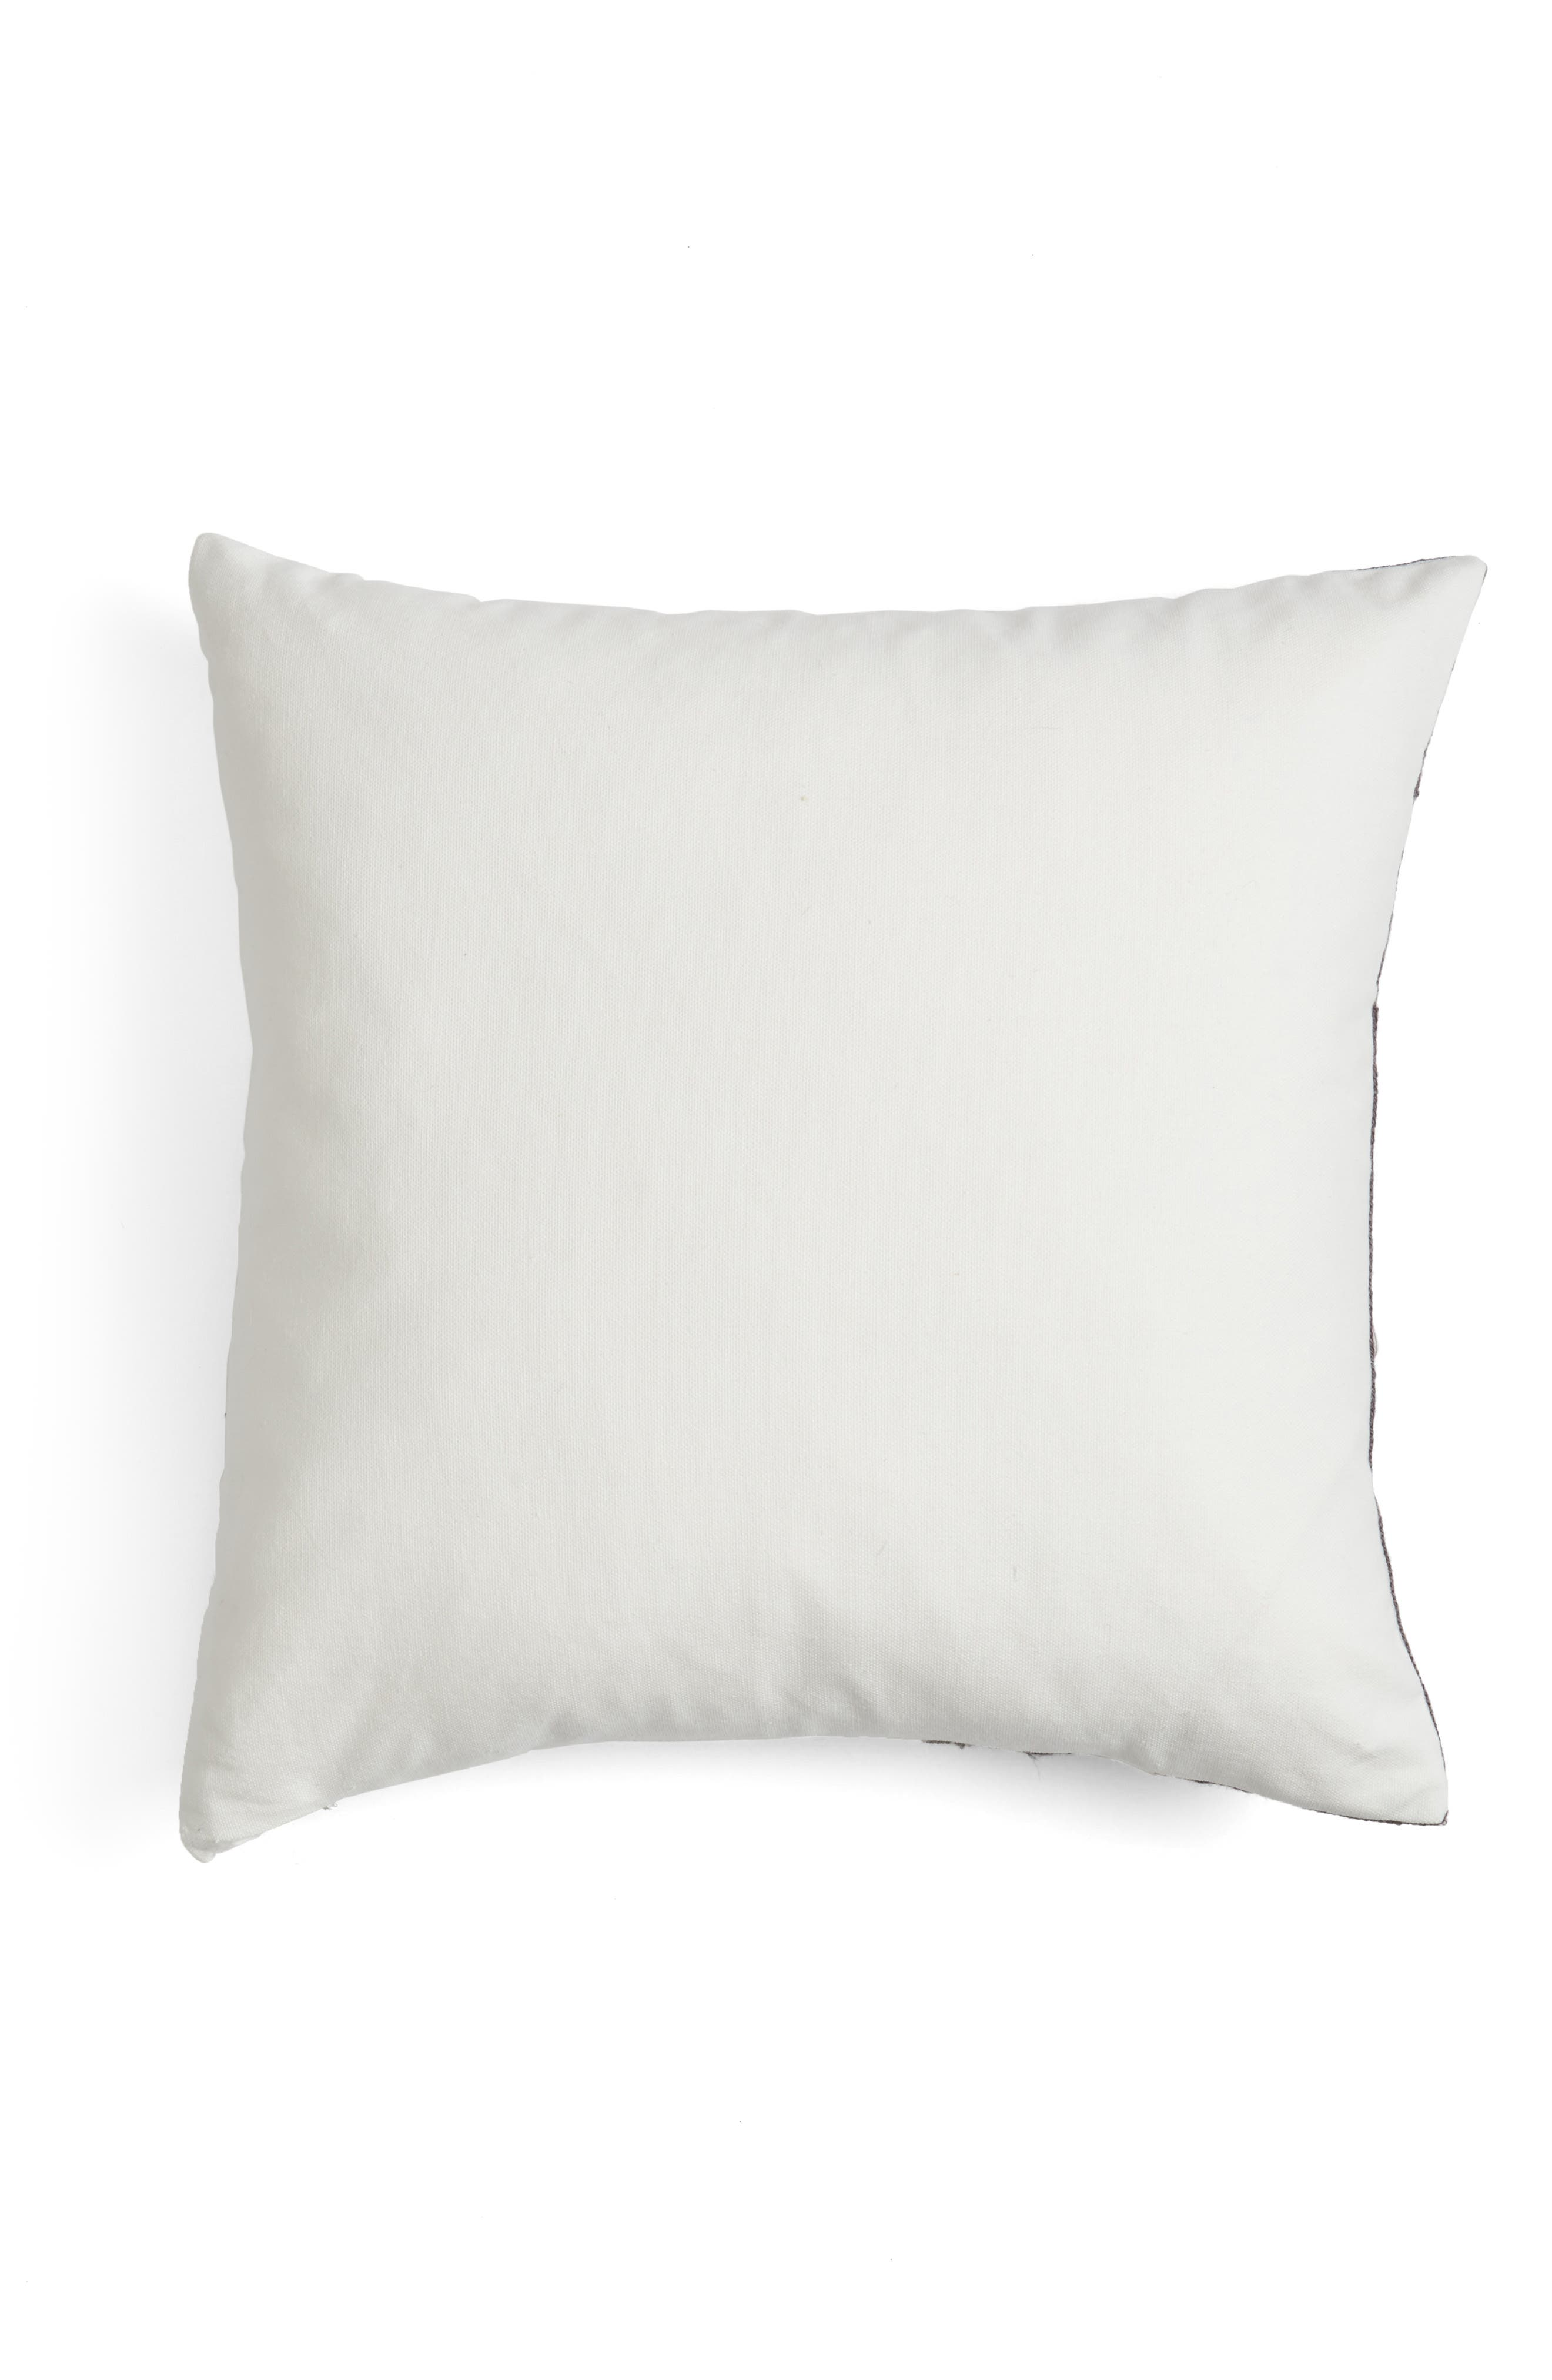 Matmi Towel Stitch Accent Pillow,                             Alternate thumbnail 2, color,                             020